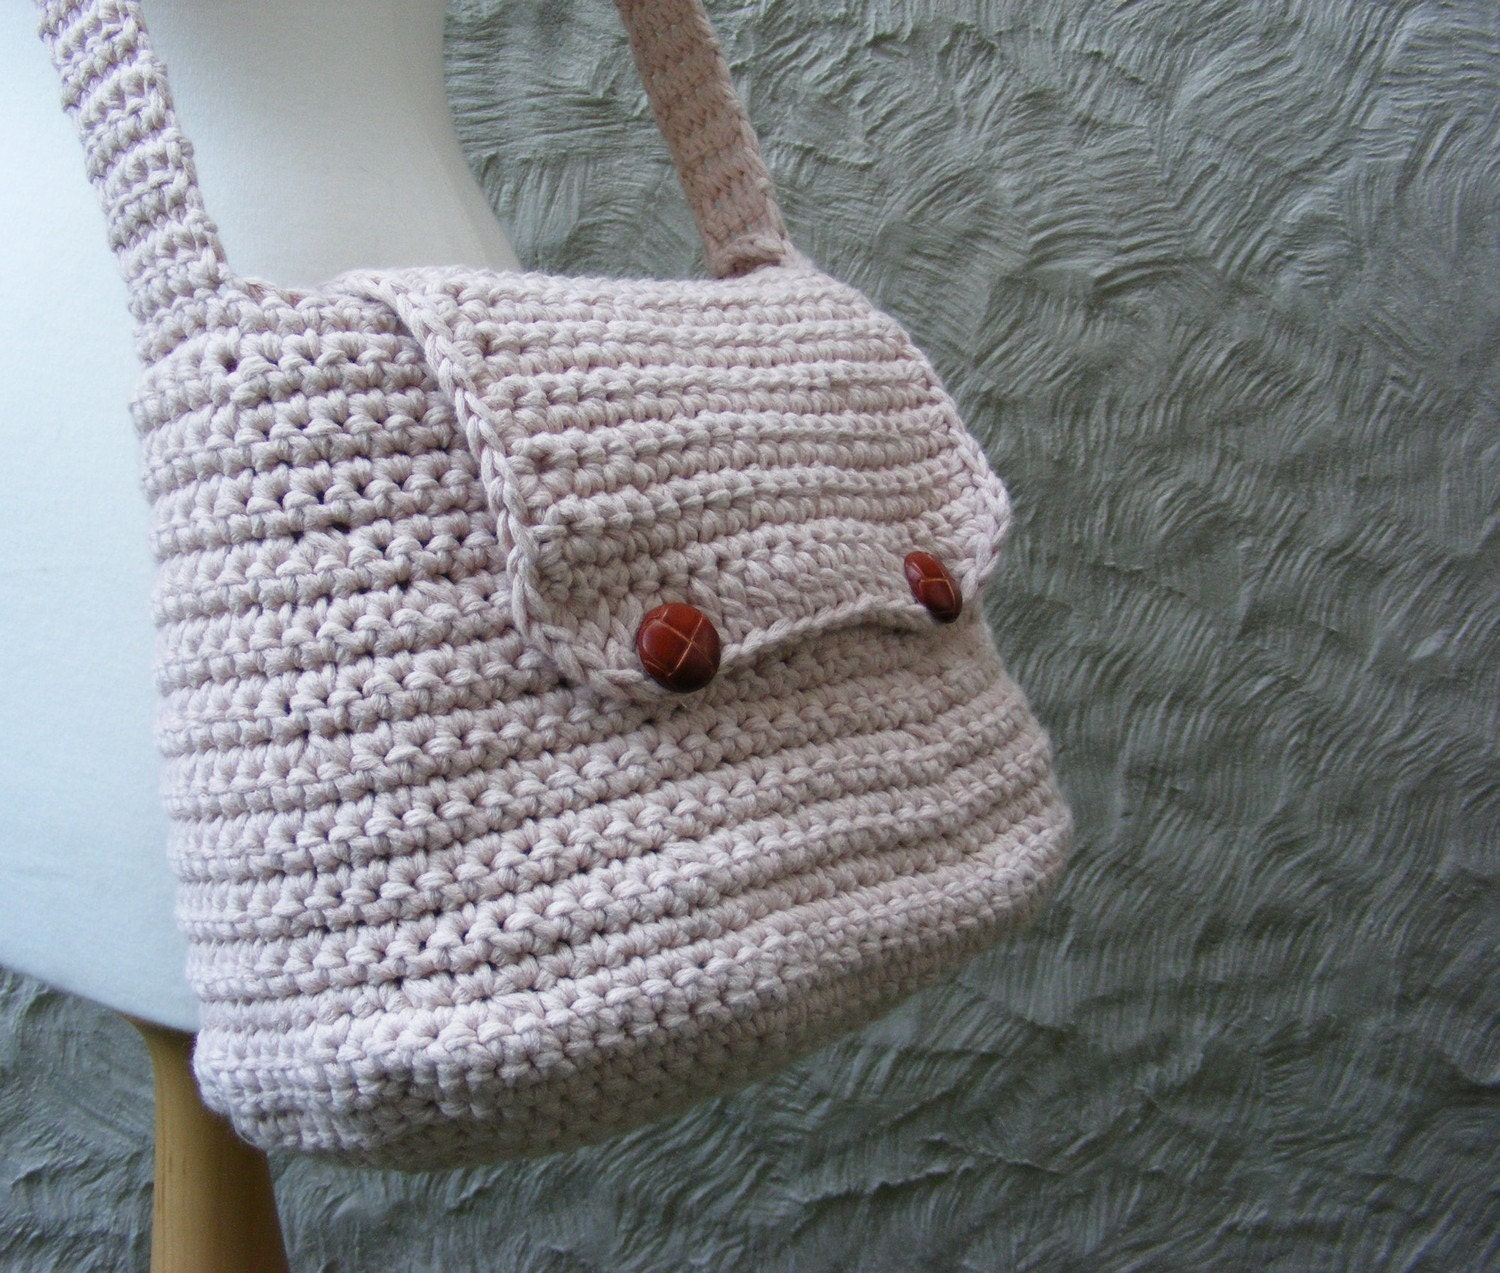 Crochet Purses And Bags Tutorials : Unavailable Listing on Etsy